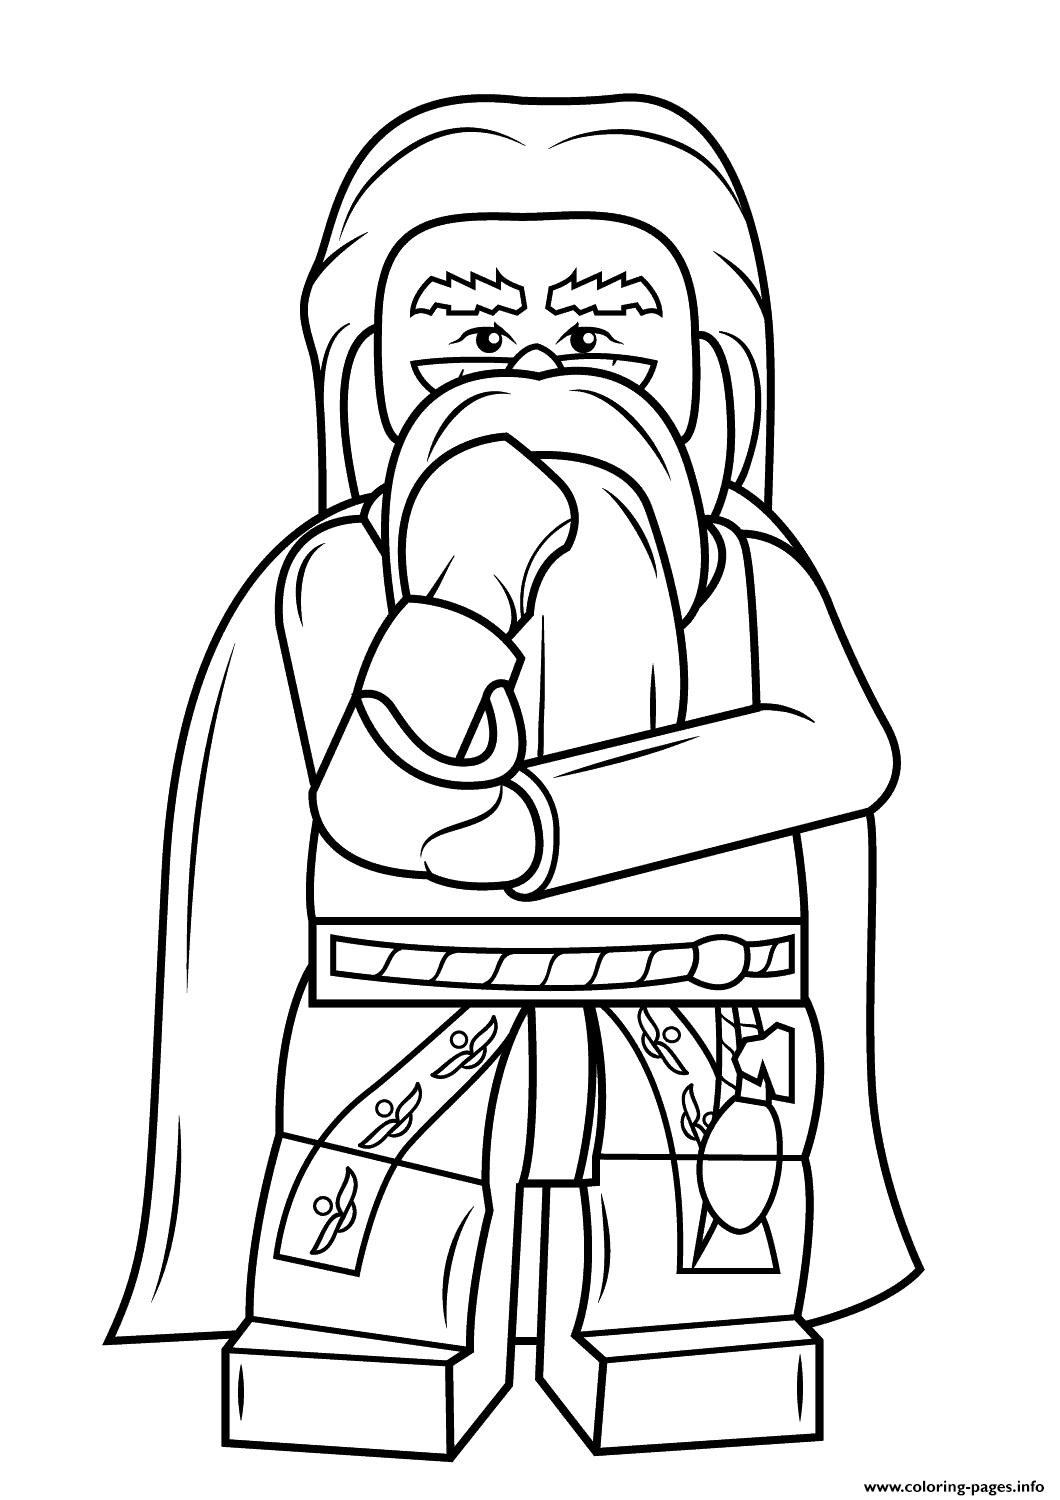 Harry potter coloring pages printable - Lego Albus Dumbledore Harry Potter Coloring Pages